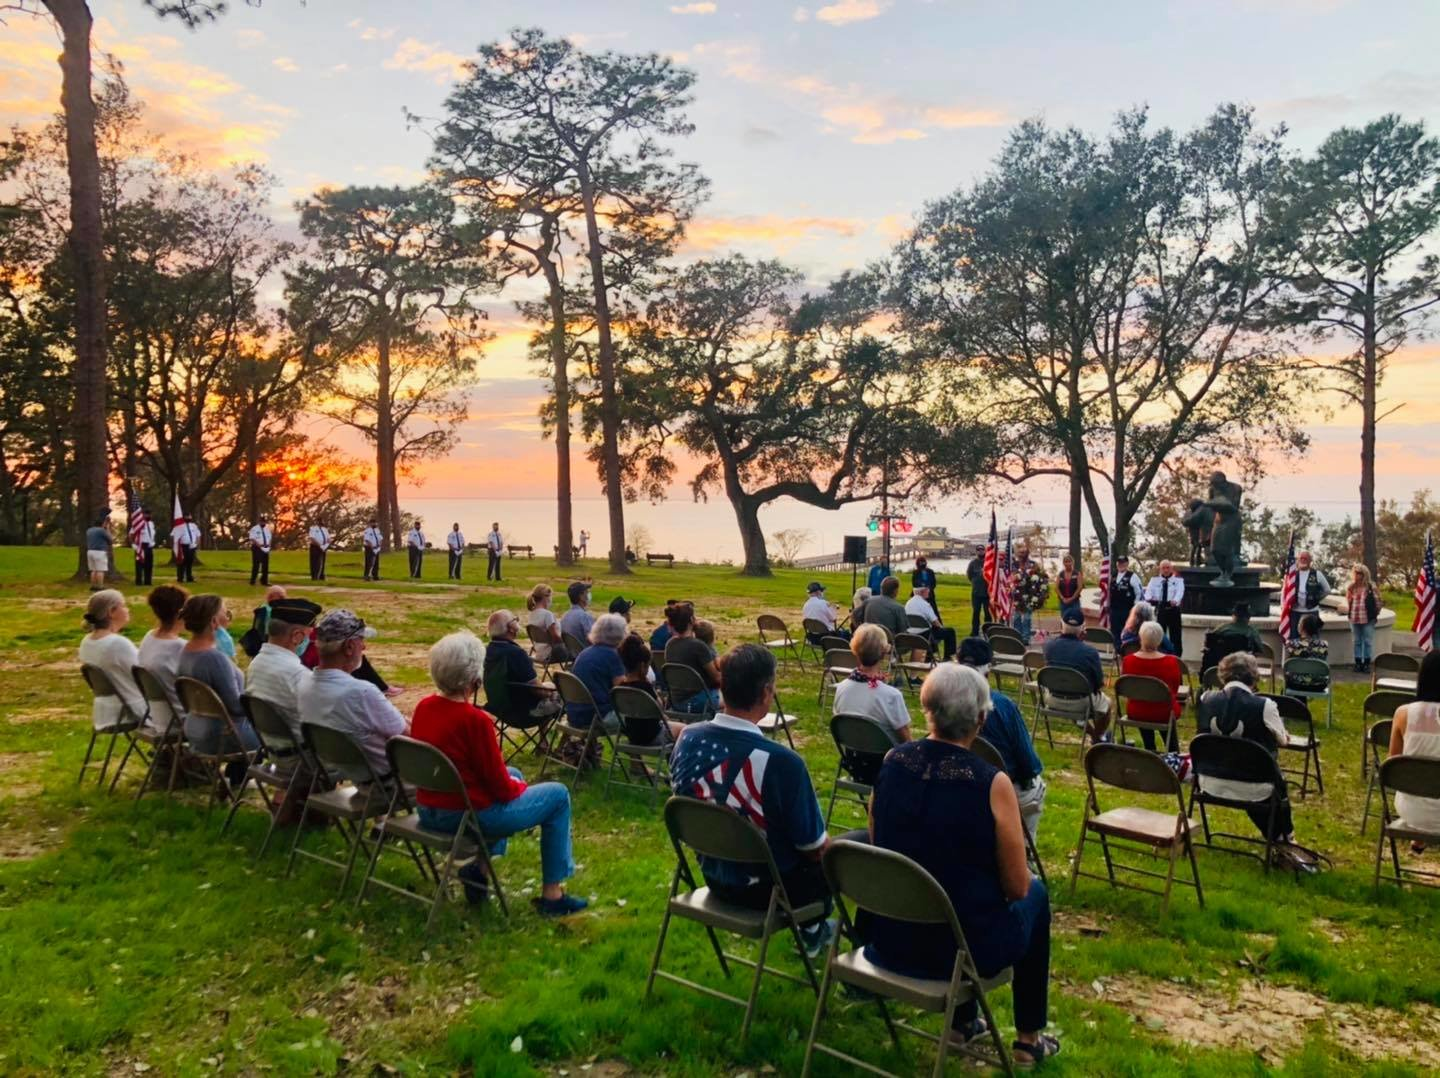 Residents take part in a Veterans Day service at Henry George Park in Fairhope on Wednesday, Nov. 11.